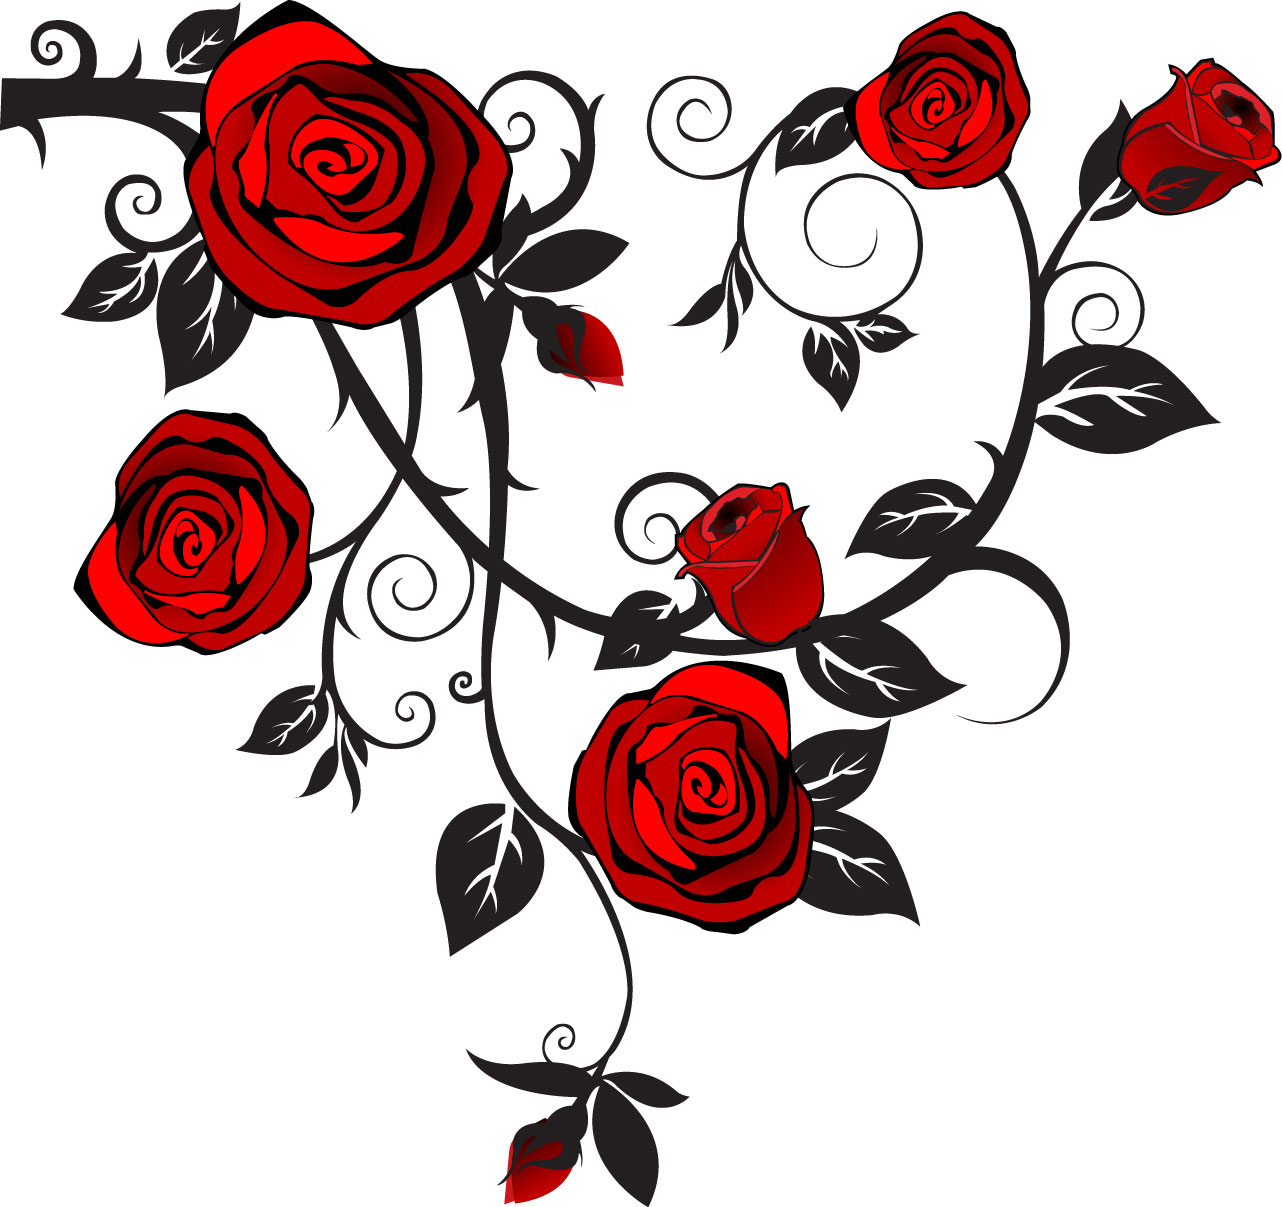 Rose   Free Images At Clker Com   Vector Clip Art Online Royalty Free